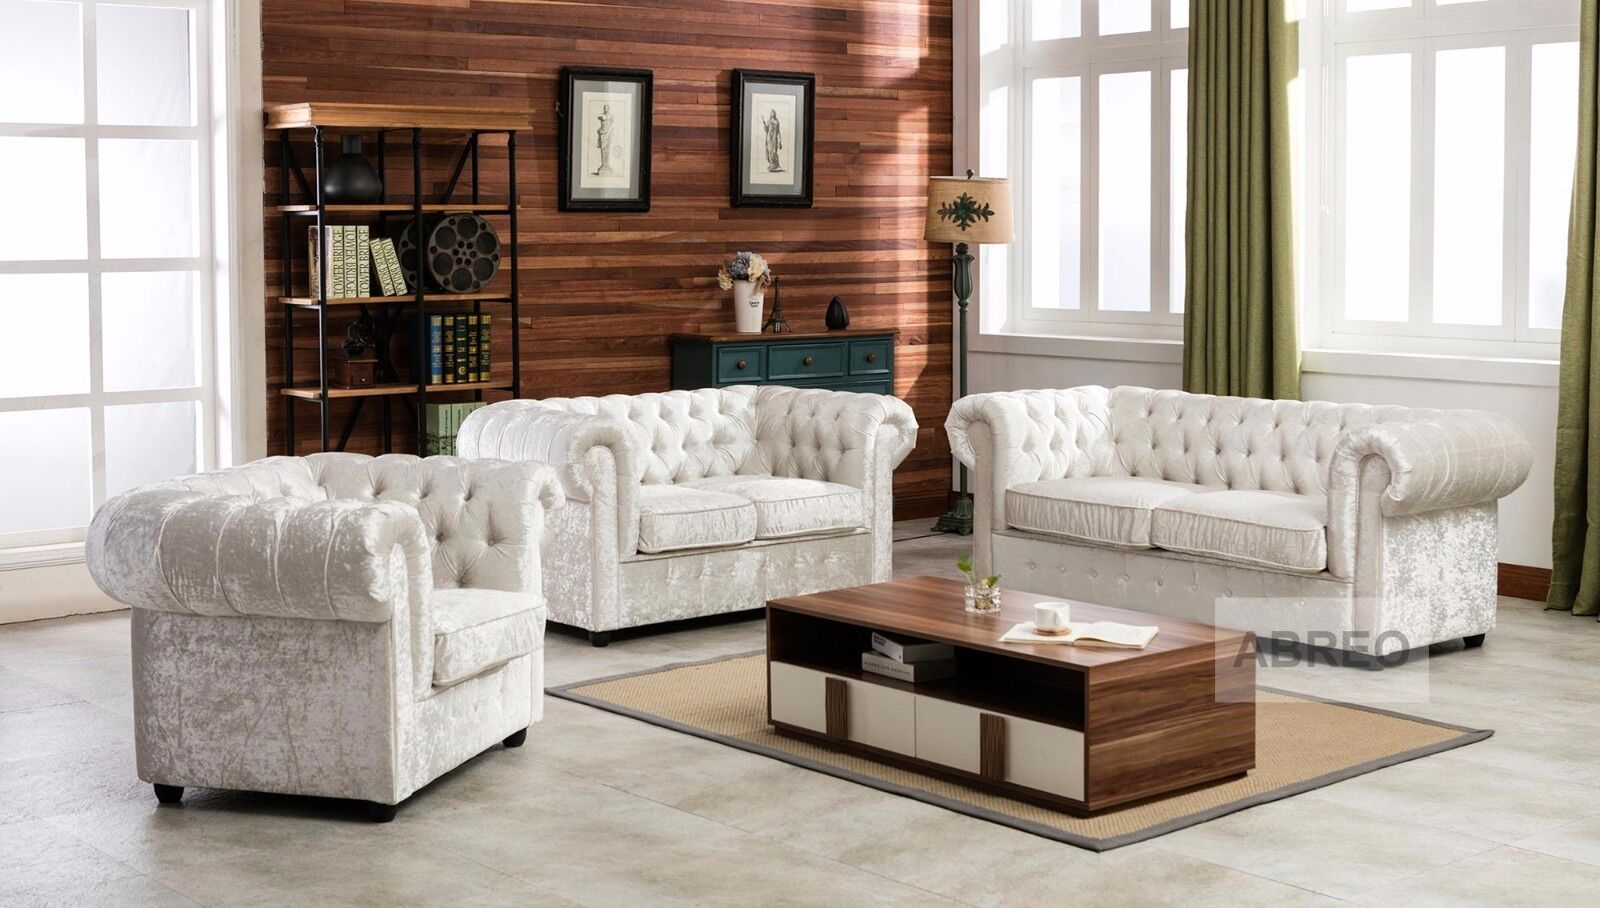 Details About Crushed Velvet Fabric Chesterfield Sofas 1 2 3 Seater Sofa  Seat Armchair Silver